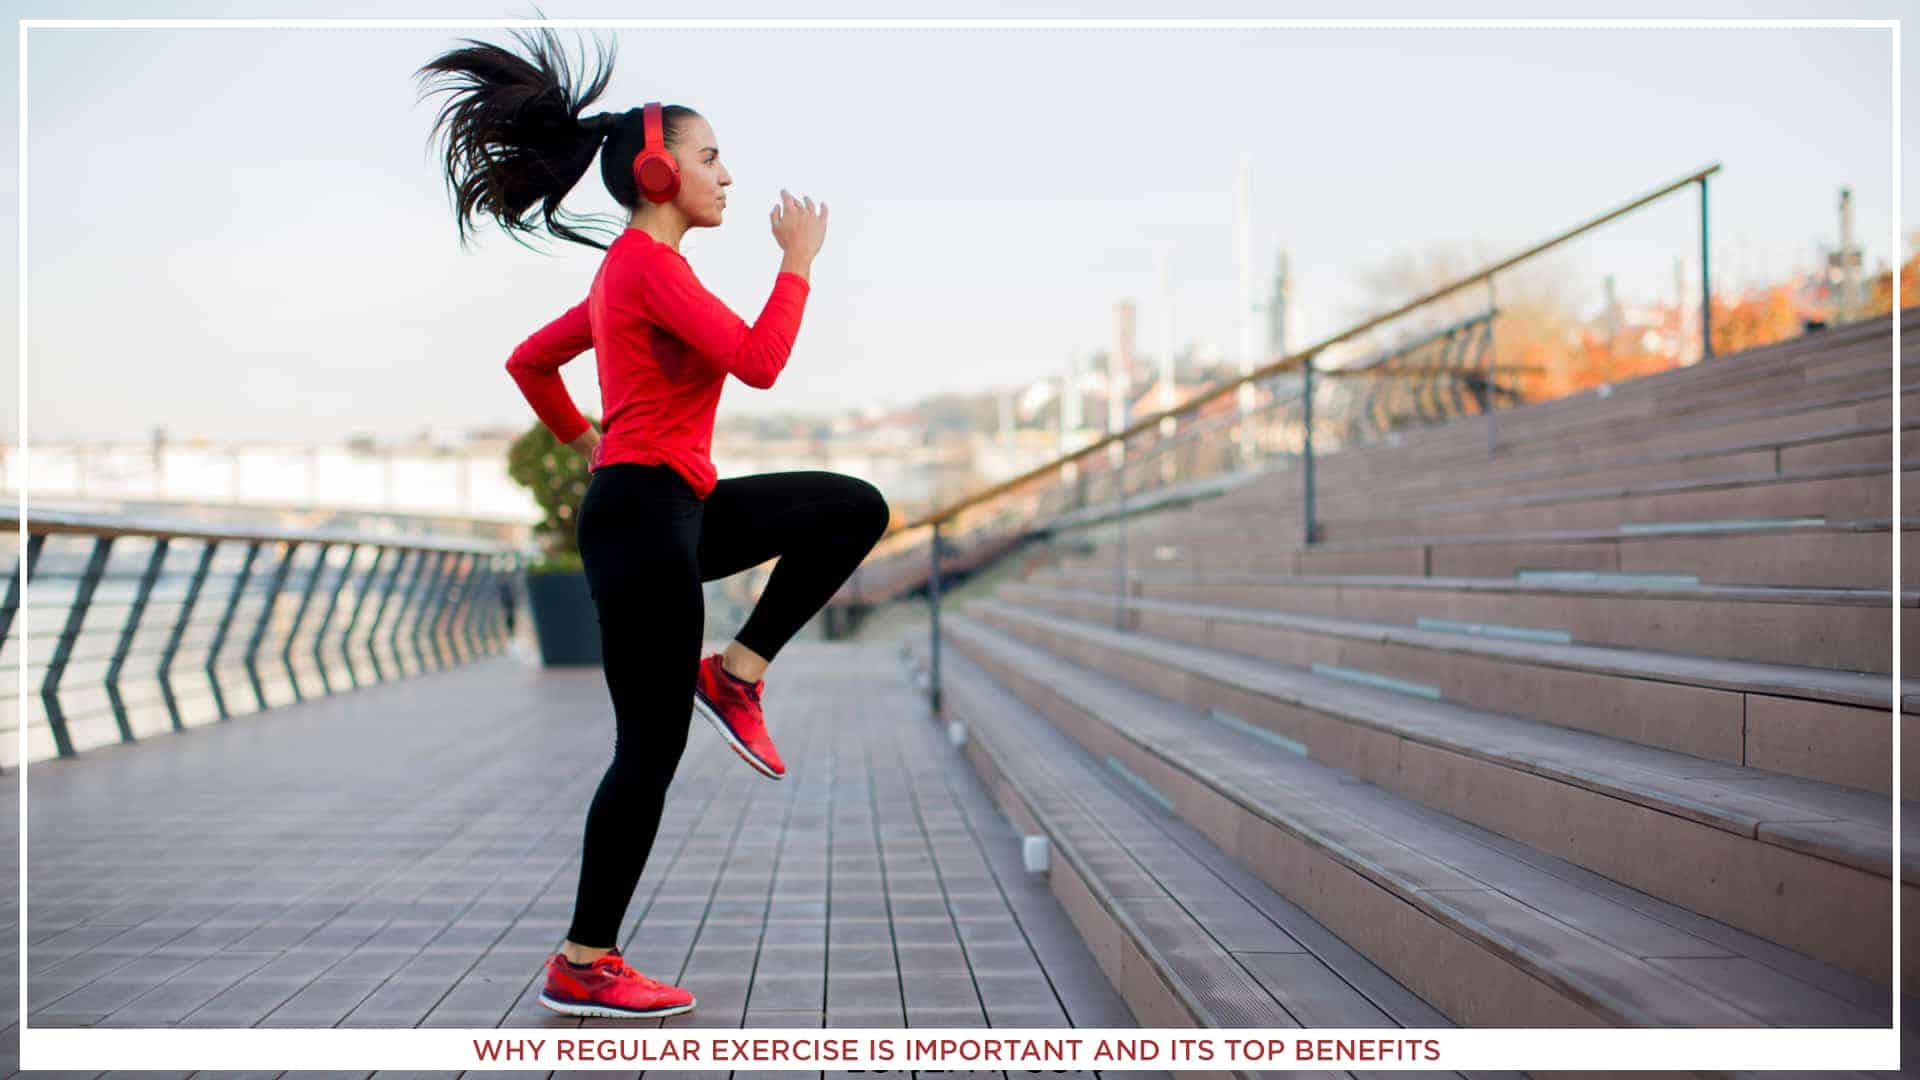 A girl wearing red hoodie, black leggining and red sneakers while doing regular exercise outside, on a stairs. She is also wearing red headphones one her ears.